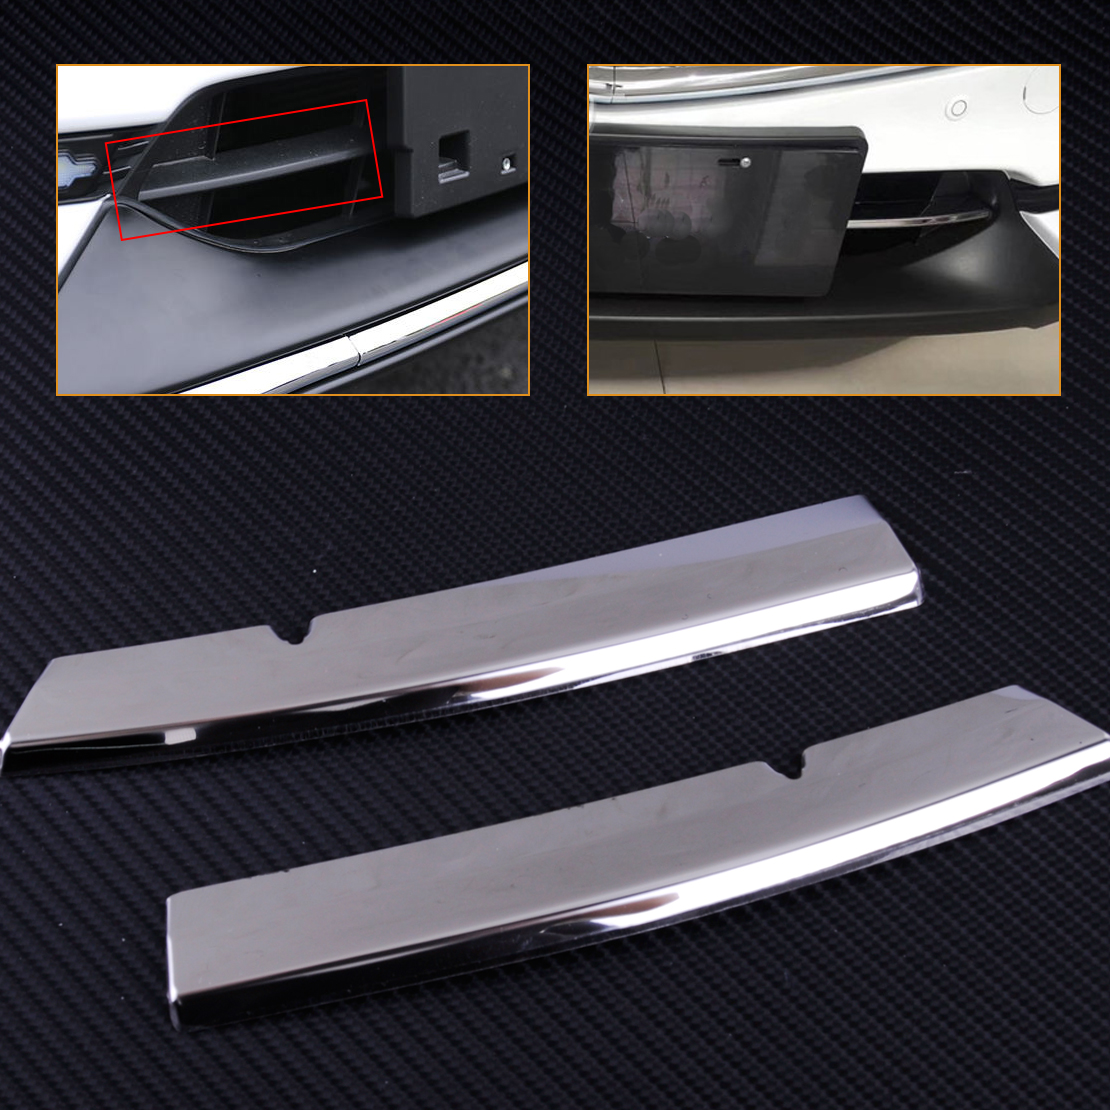 CITALL High Quality Stainless Steel Chrome Plated Grill Strips Bumper Air-inlet Grille Trims Fit for Mazda CX5 2017 2018 new arrival for lexus rx200t rx450h 2016 2pcs stainless steel chrome rear window sill decorative trims